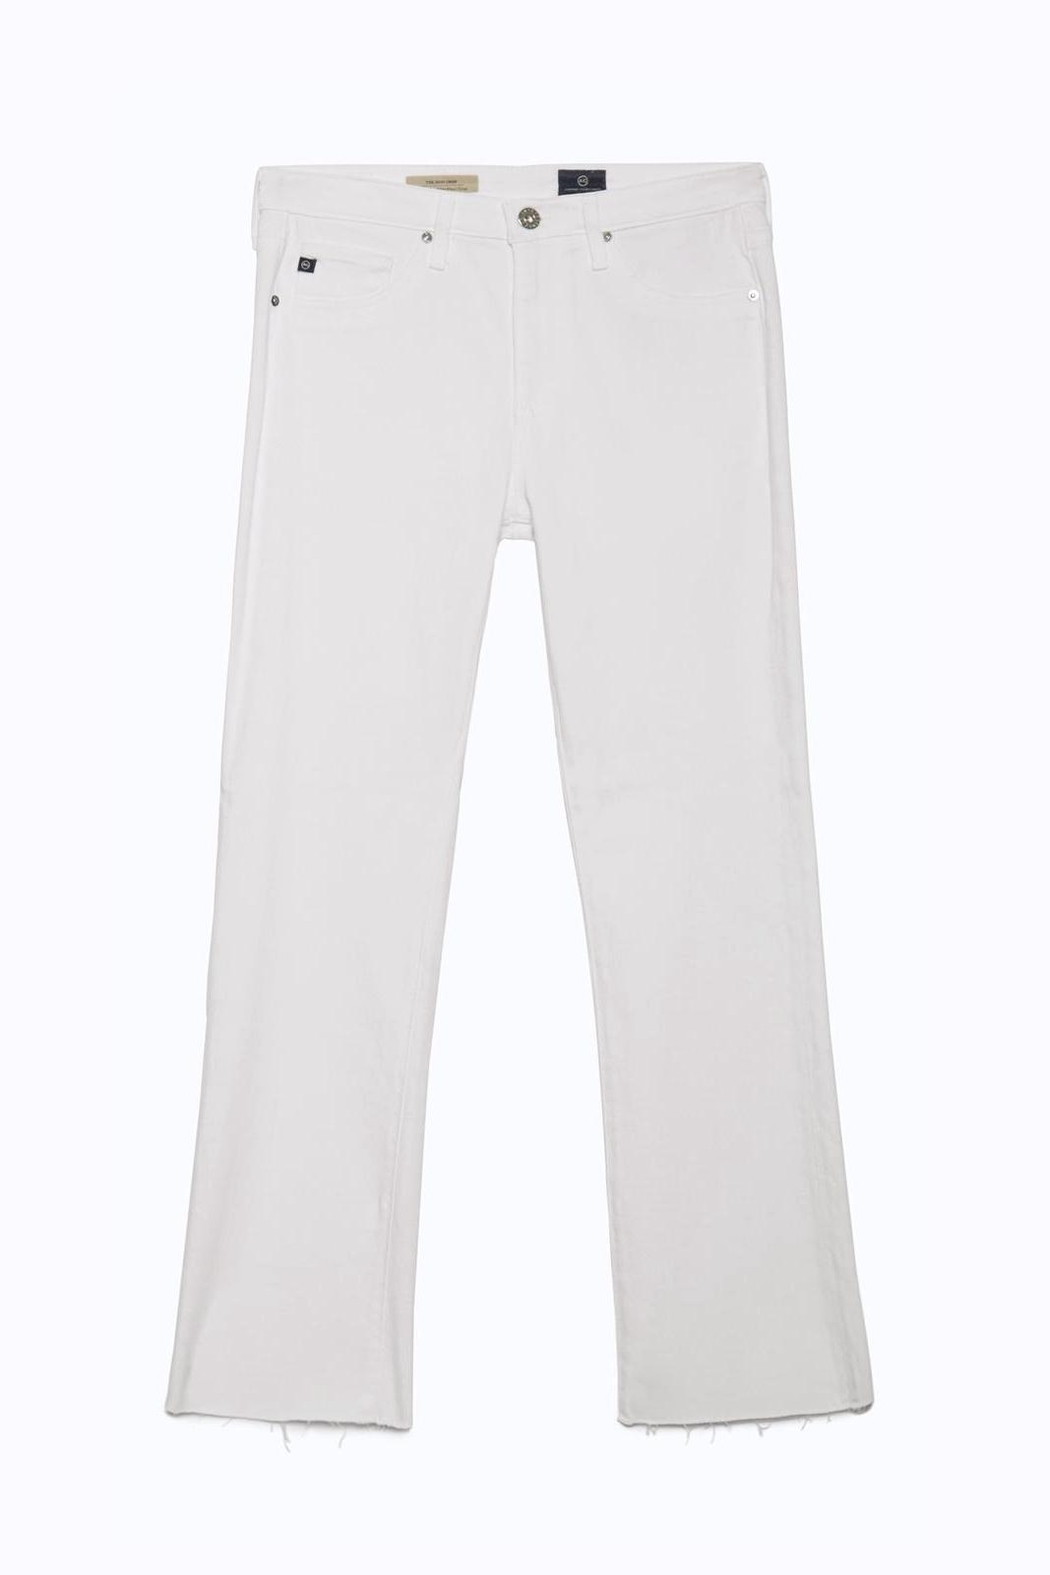 AG Adriano Goldschmied Jodi Crop White - Back Cropped Image